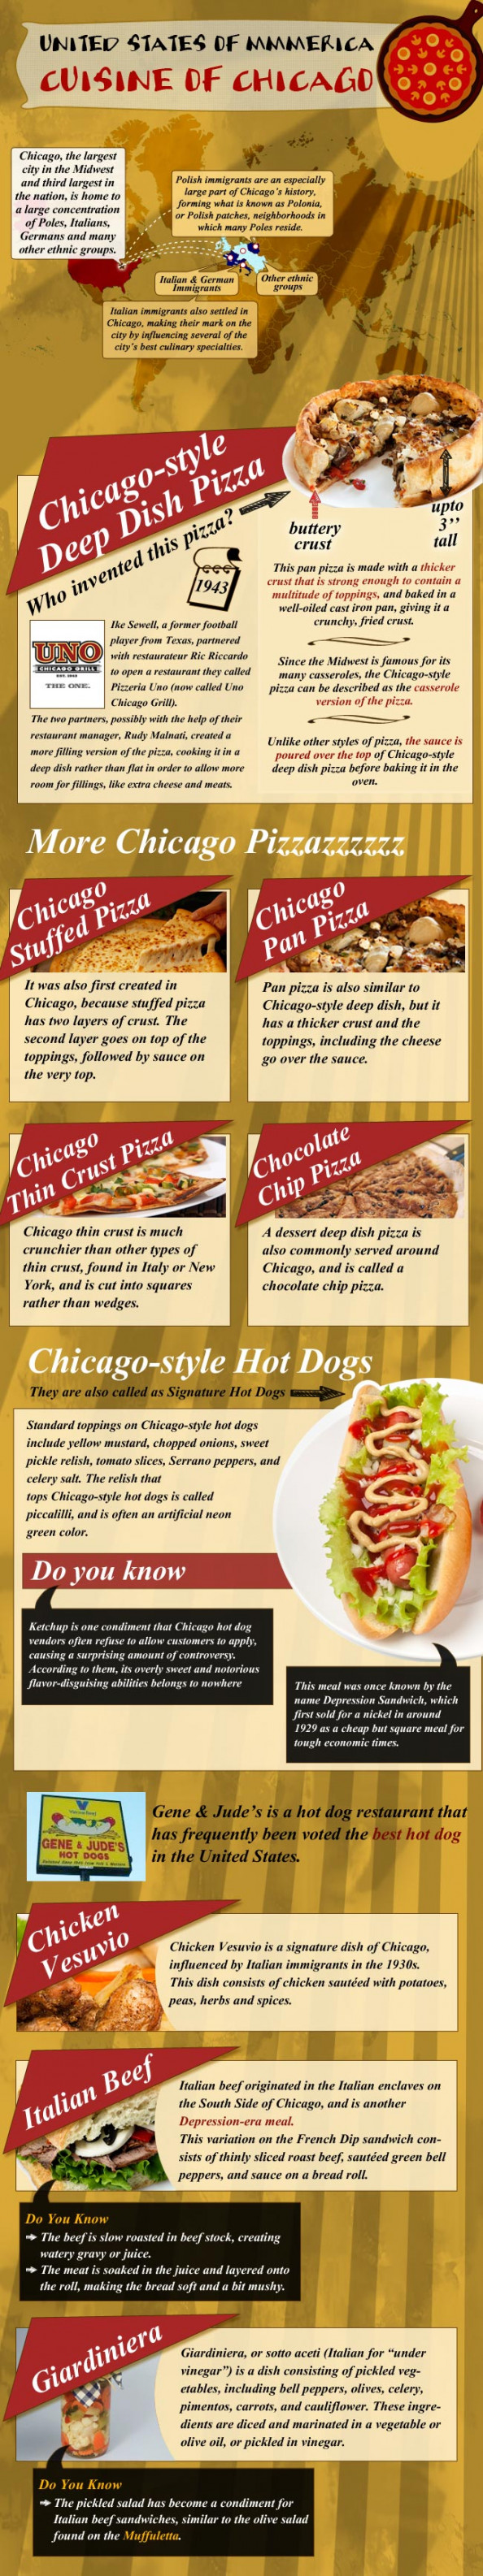 Cuisine of Chicago Infographic